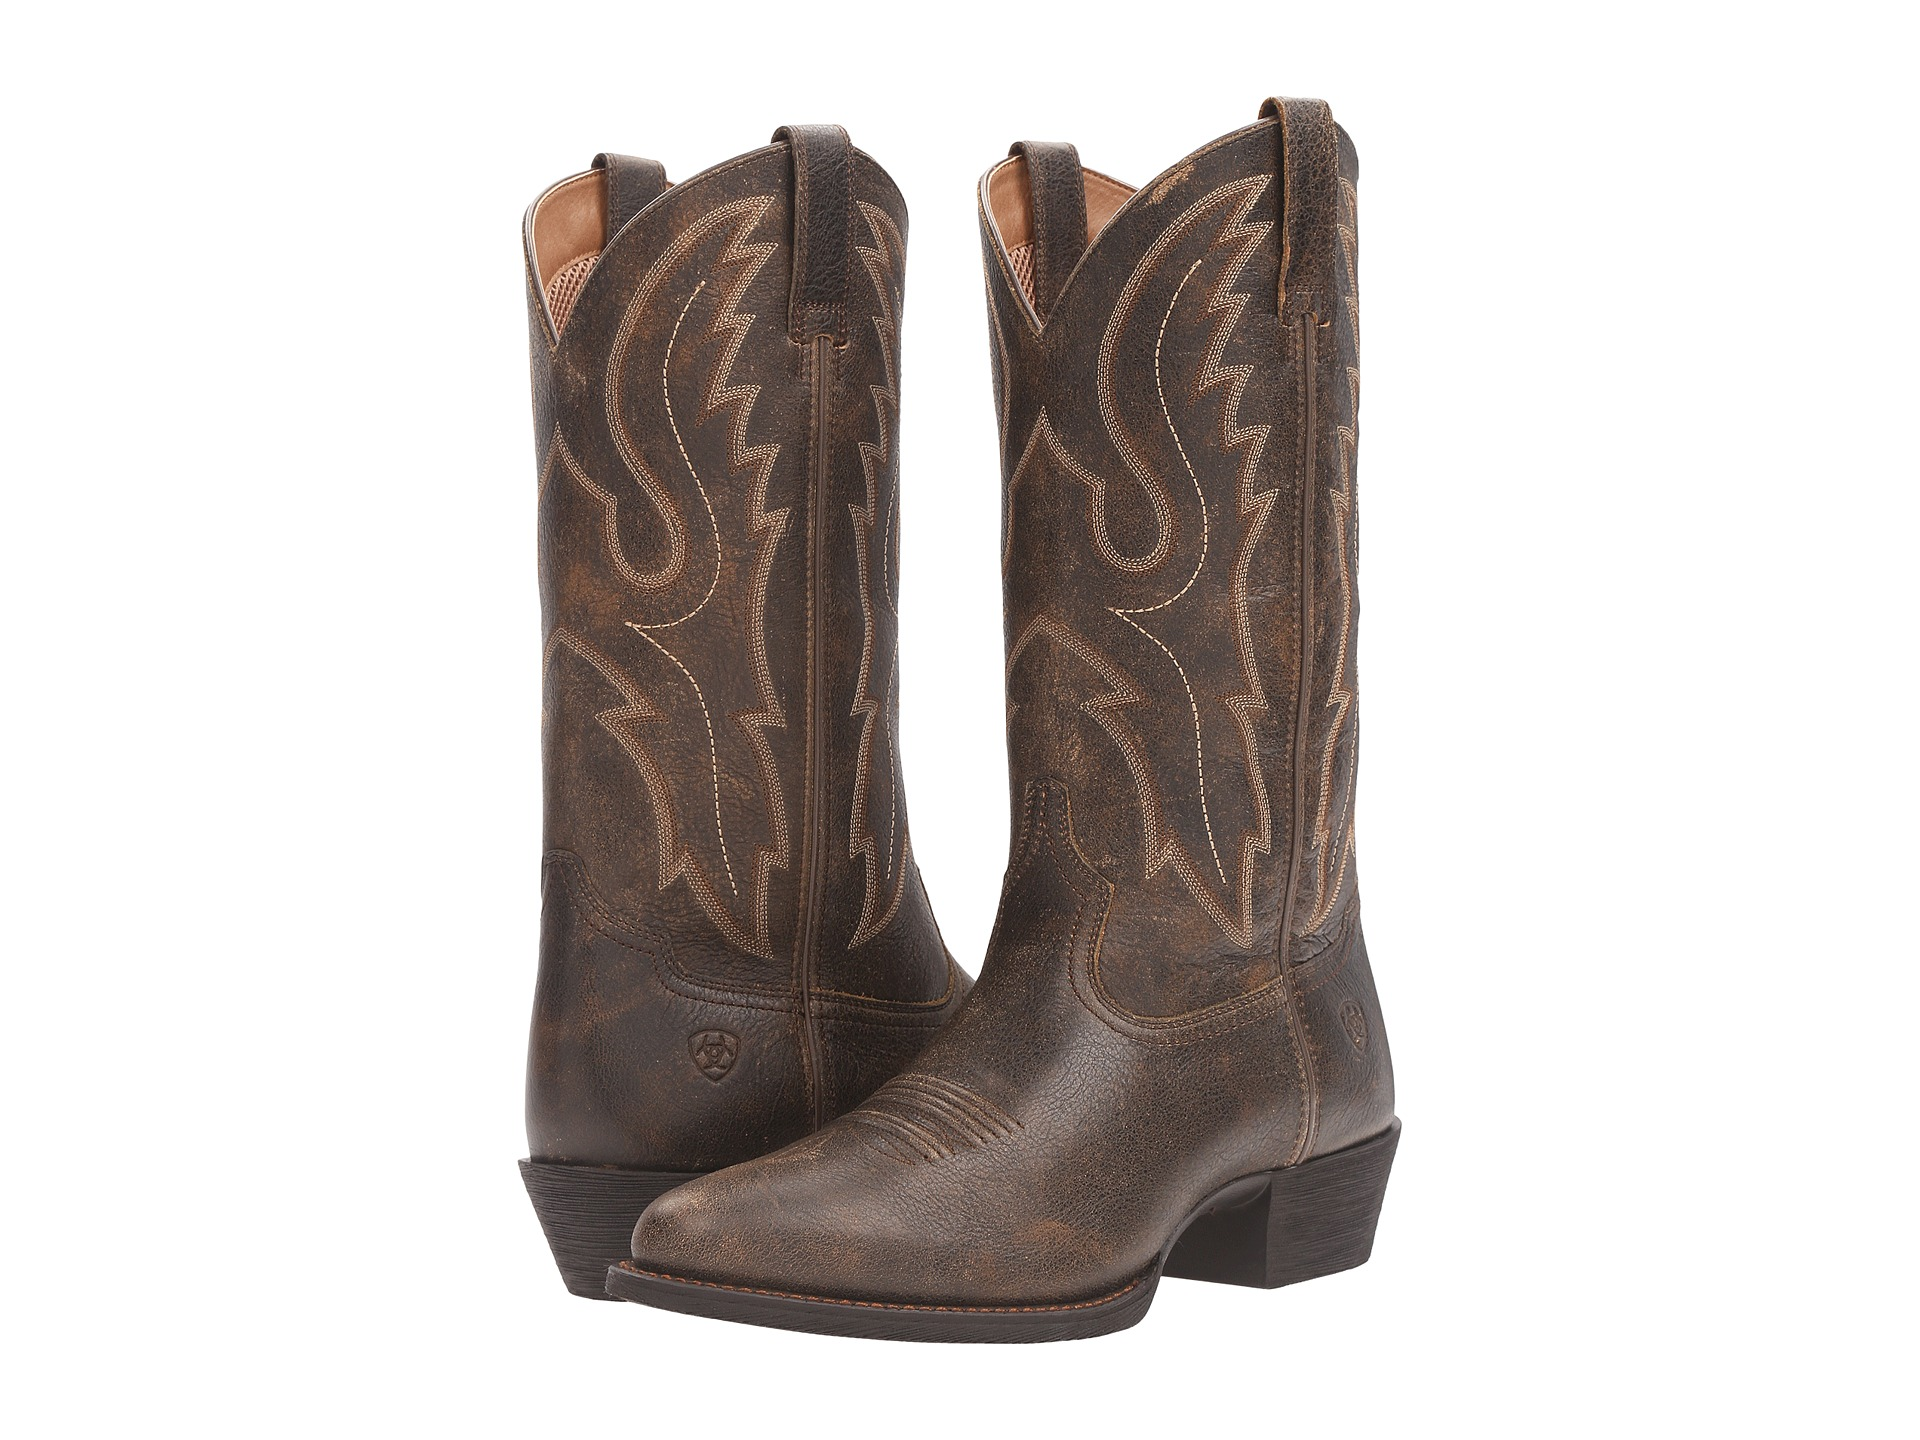 Ariat Boots Men   Shipped Free at Zappos